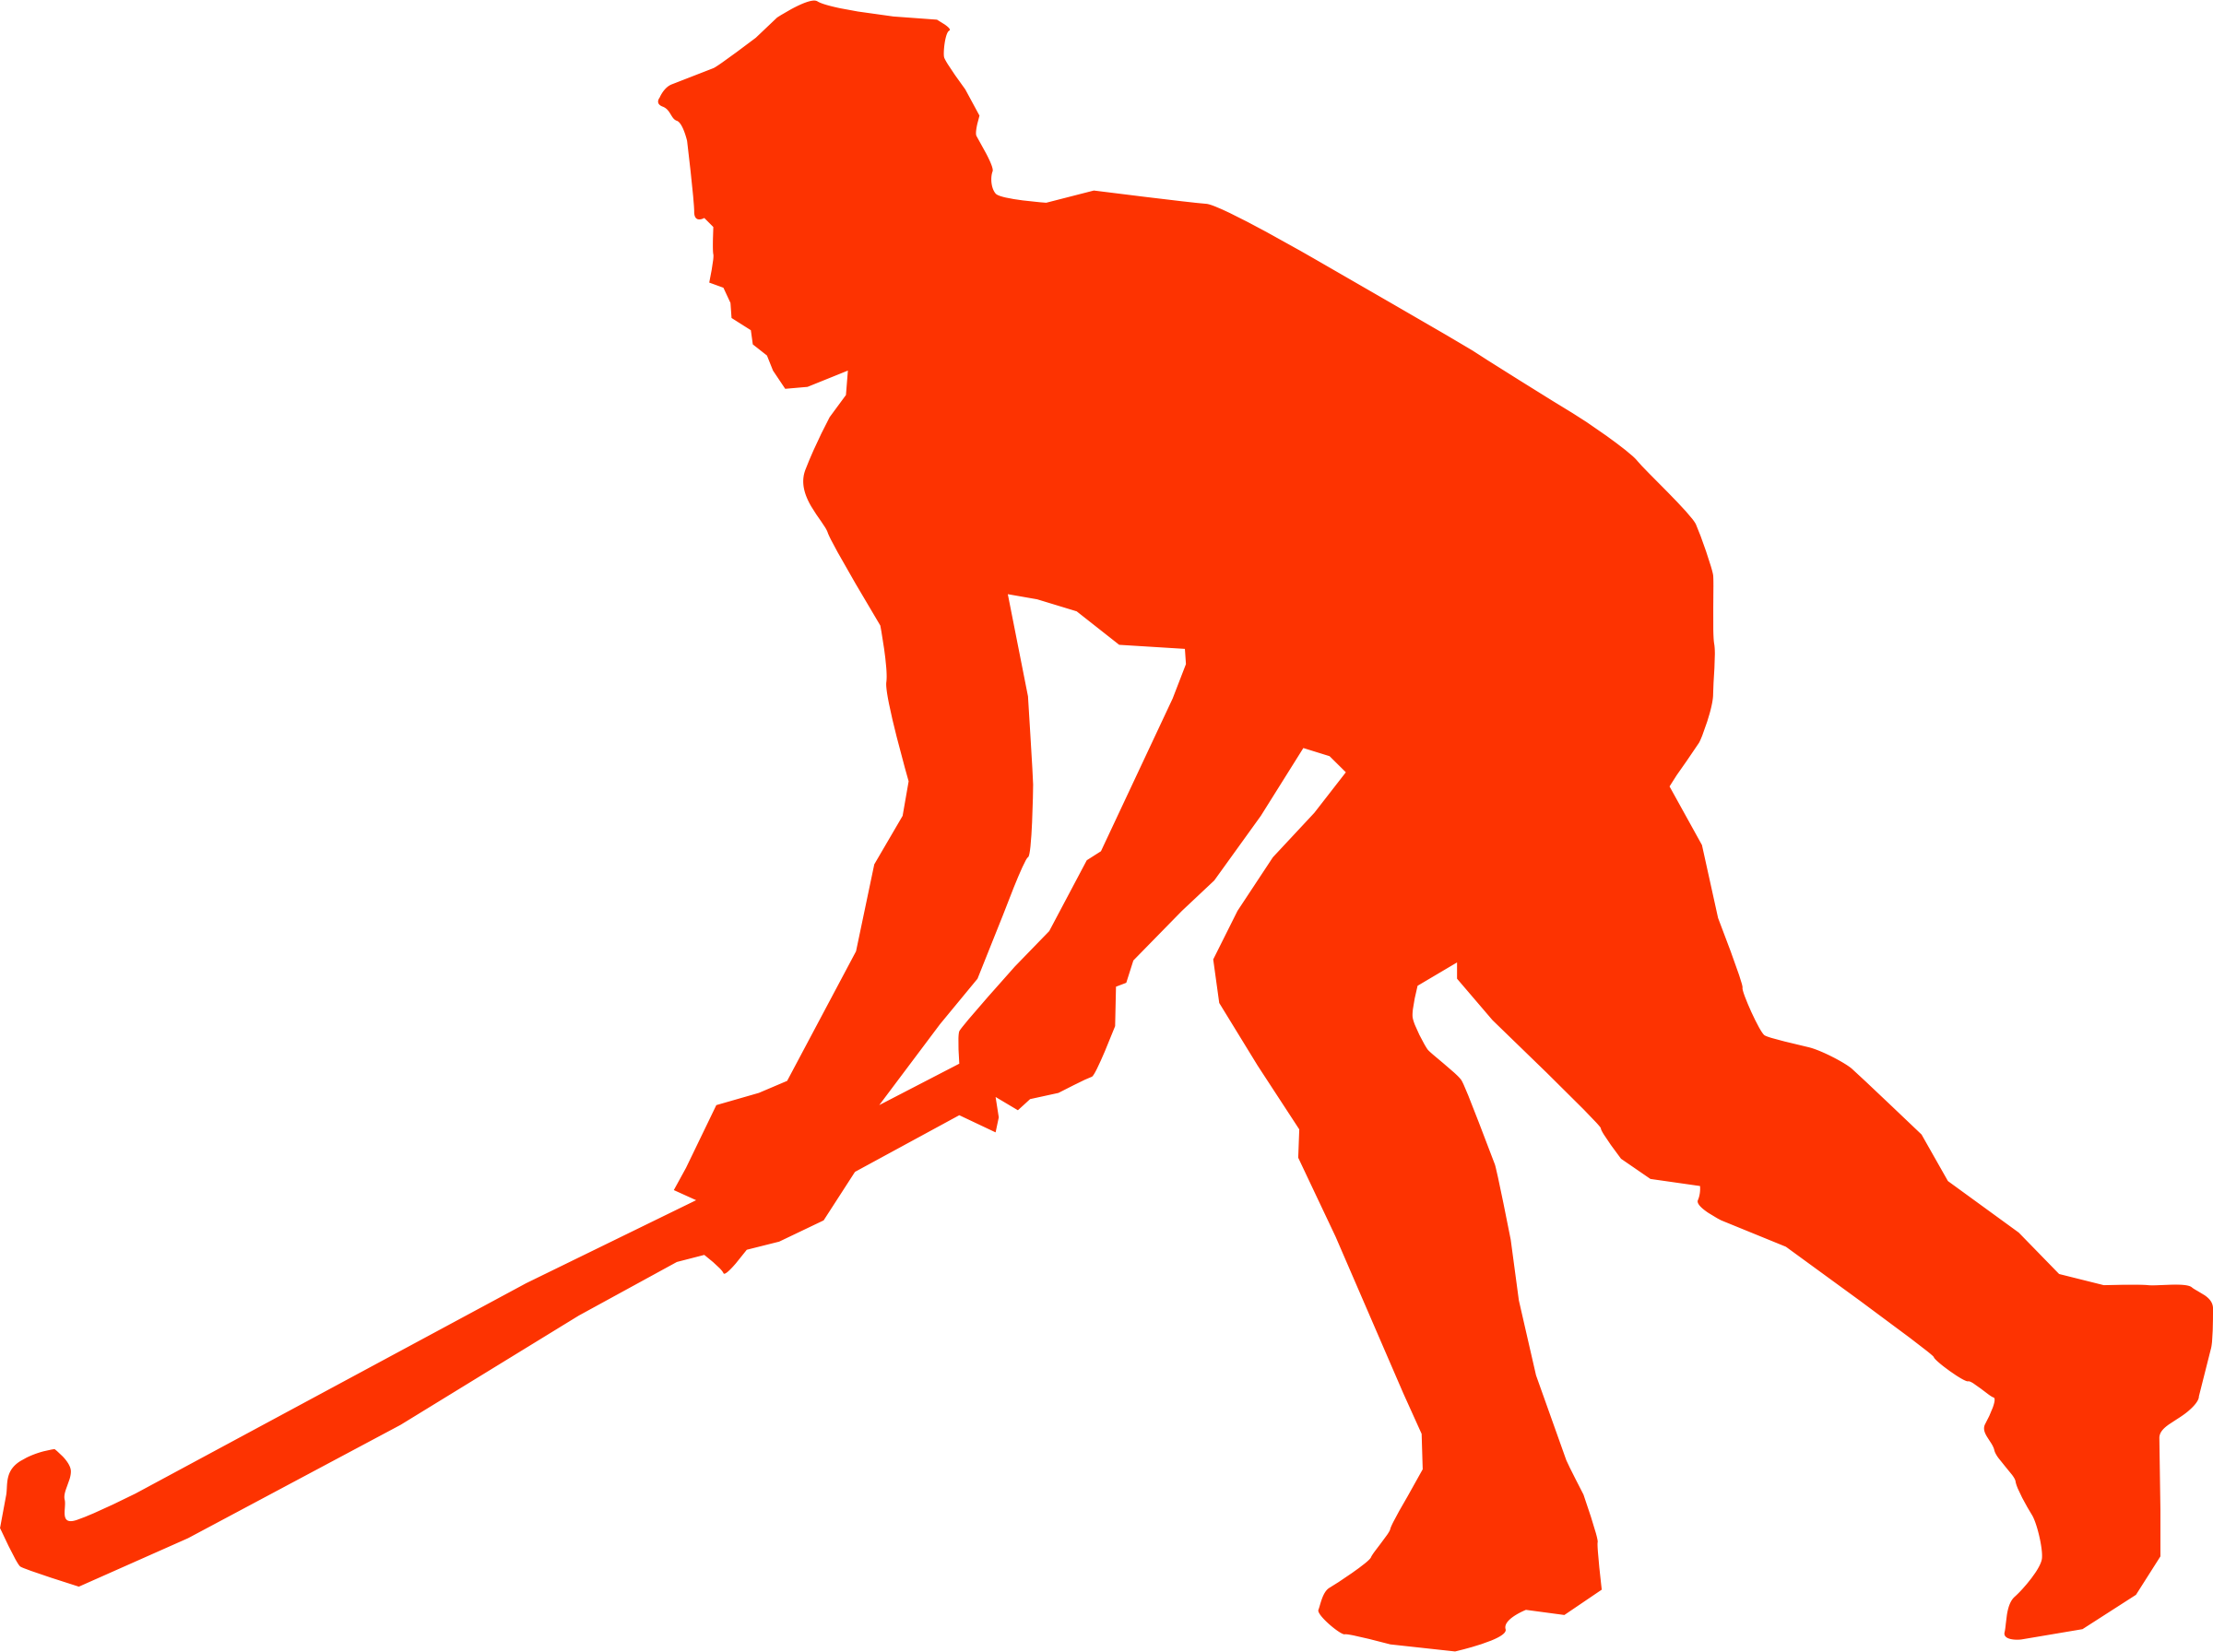 Ecg with baseball player vector clipart free clip art royalty free download Pin by Christine Wiegert on Art and Sports | Pinterest | Hockey clip art royalty free download